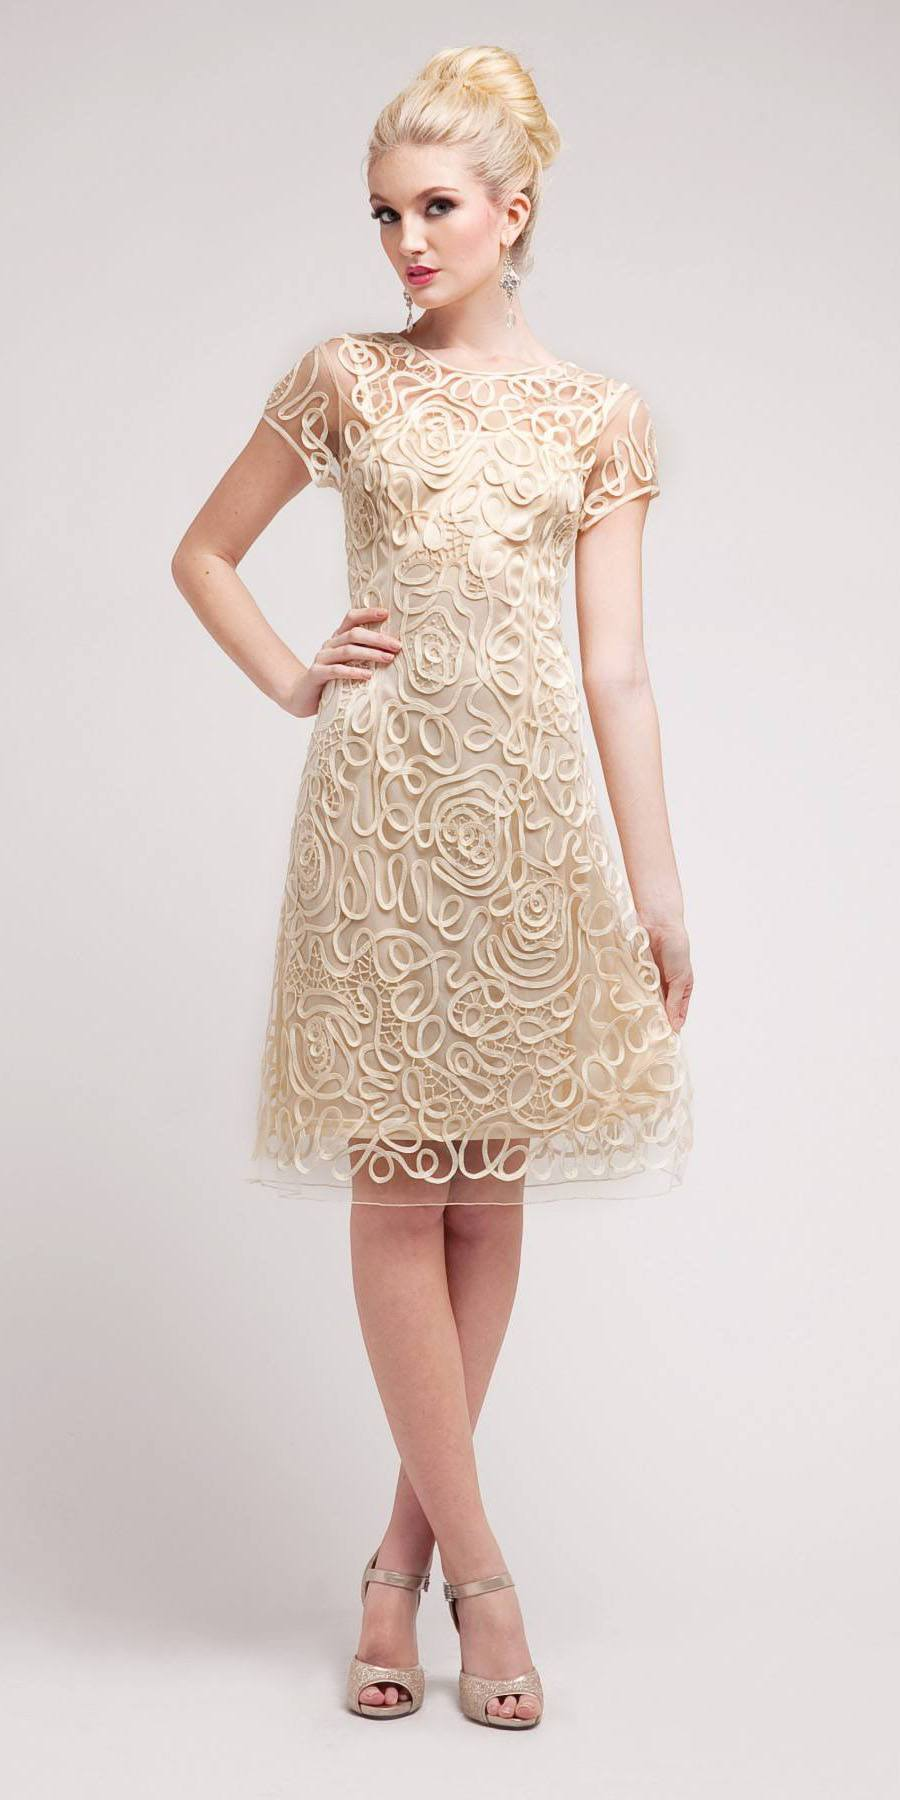 Cinderella Divine 1921 - Semi Formal Knee Length Lace Cream Dress Short  Sleeve ... dbc54c6a3